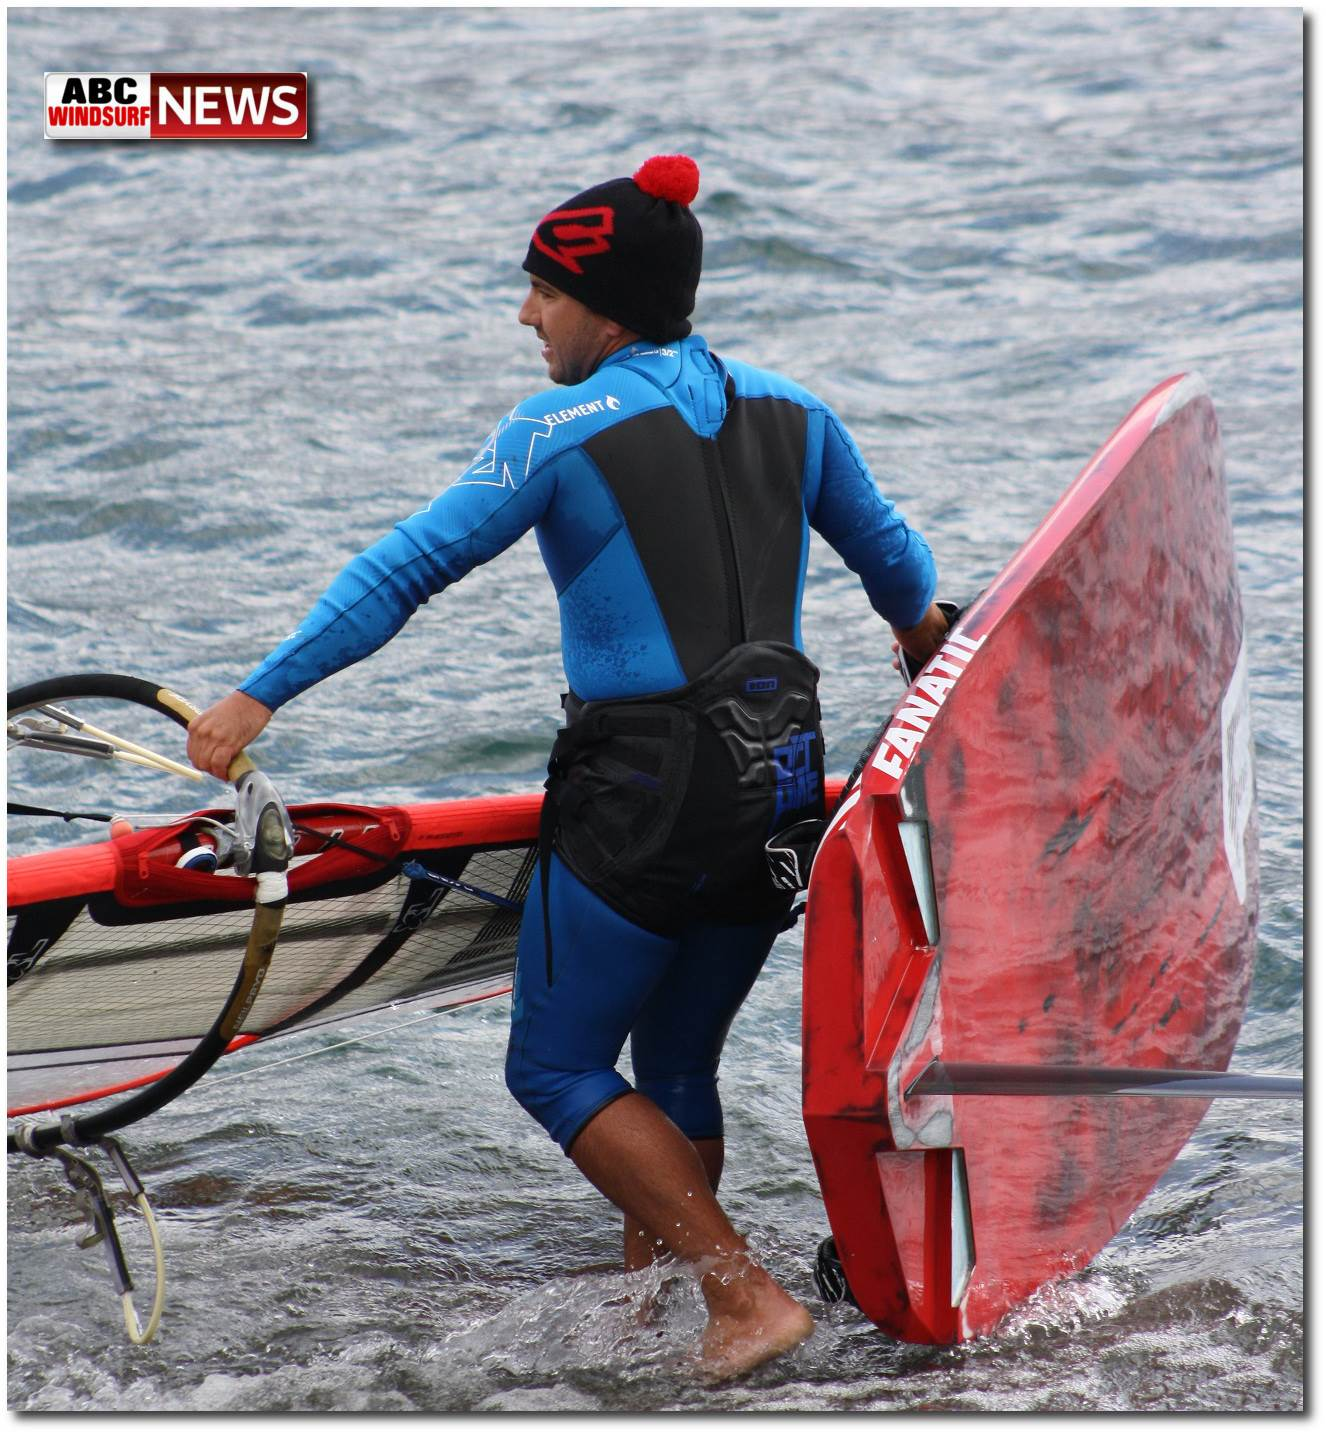 My Vision to spend more time on my sailboard playing in